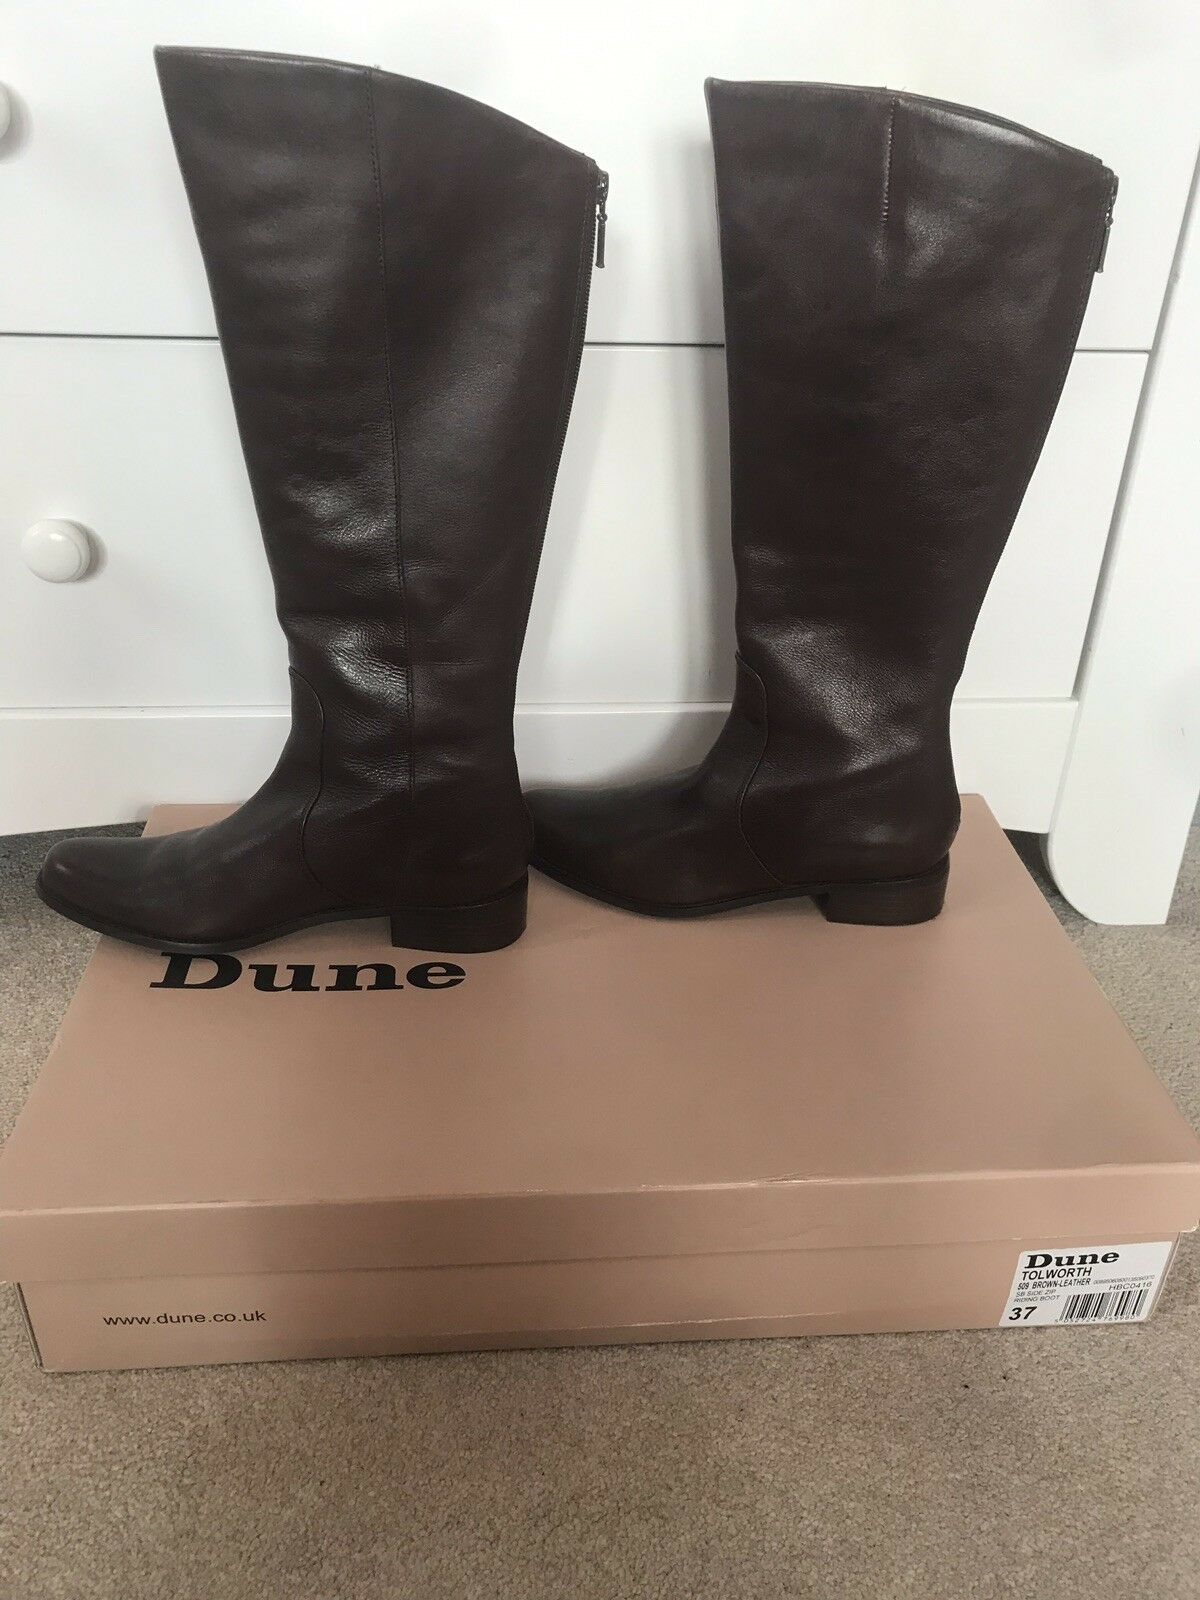 Dune braun Knee High High High Stiefel - Größe 4 - BRAND NEW IN BOX b2a95a